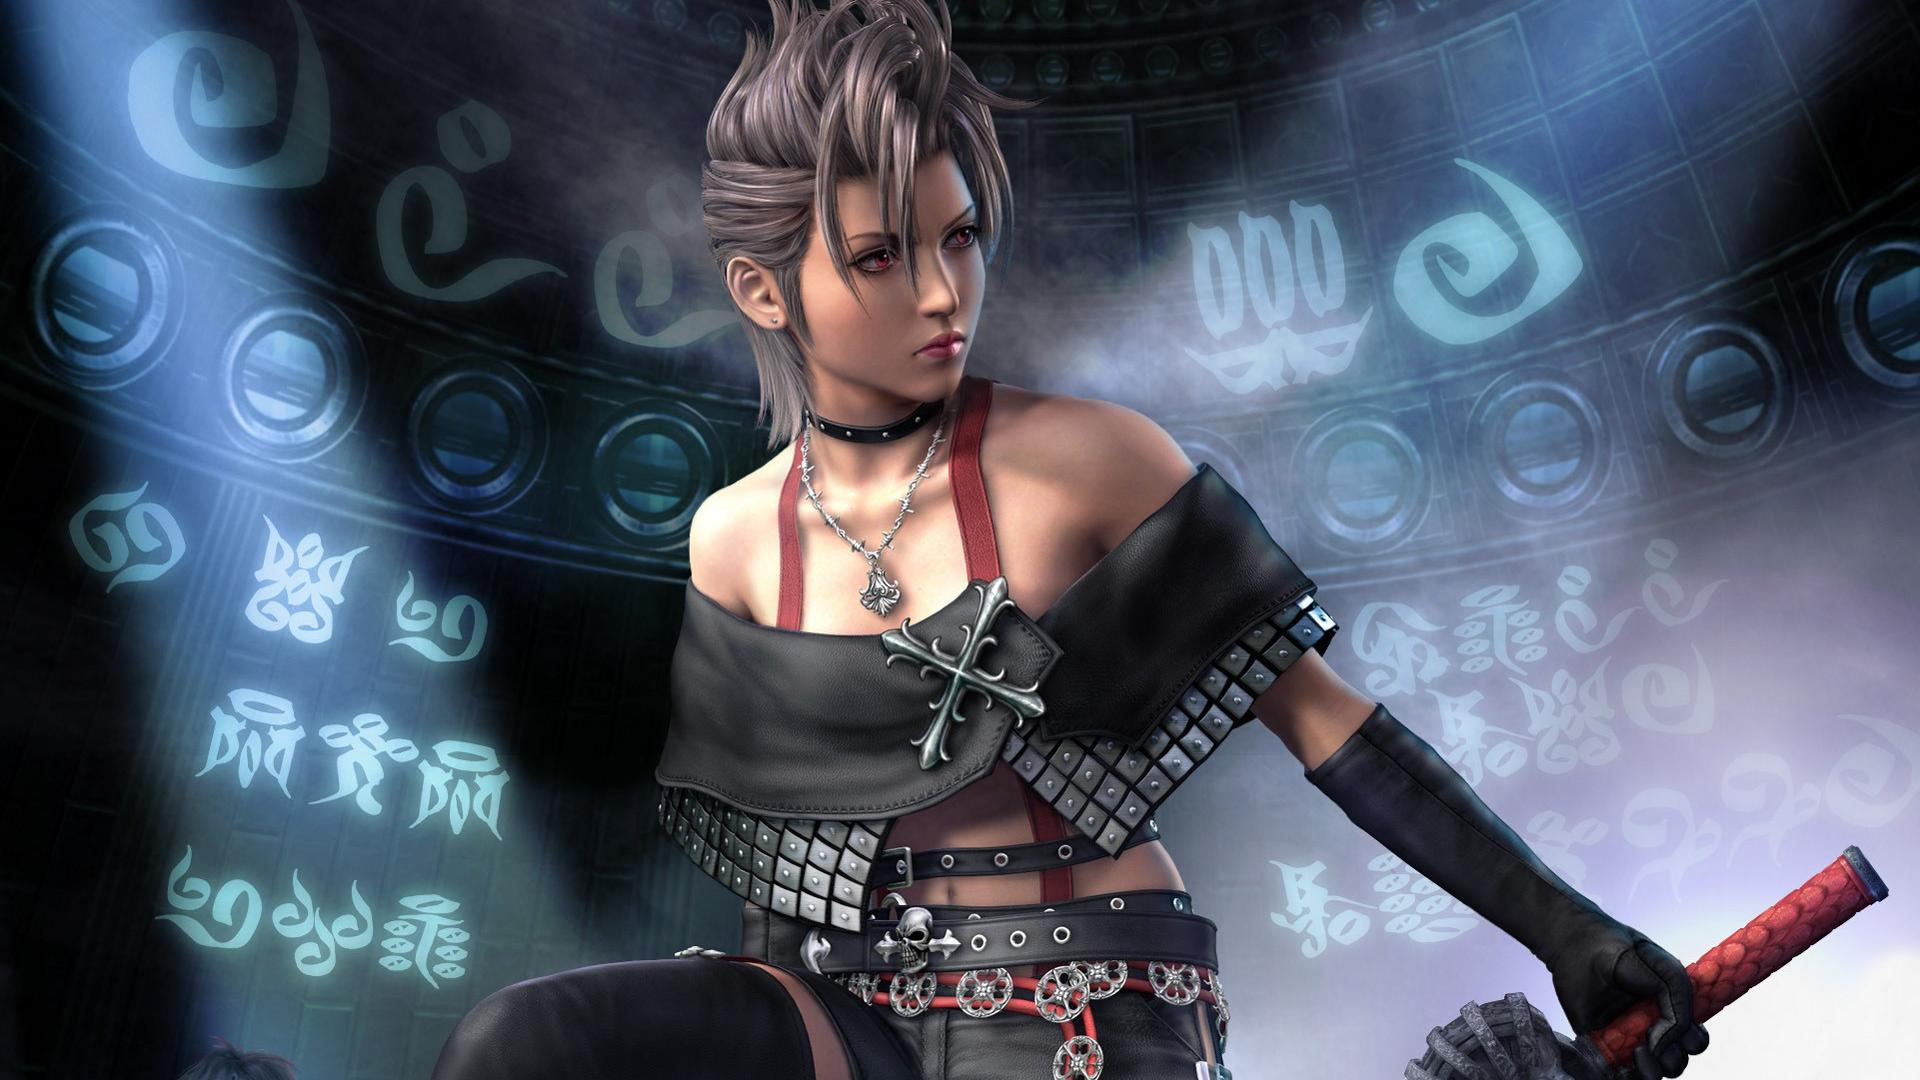 Final Fantasy X 2 Paine Hd Wallpaper